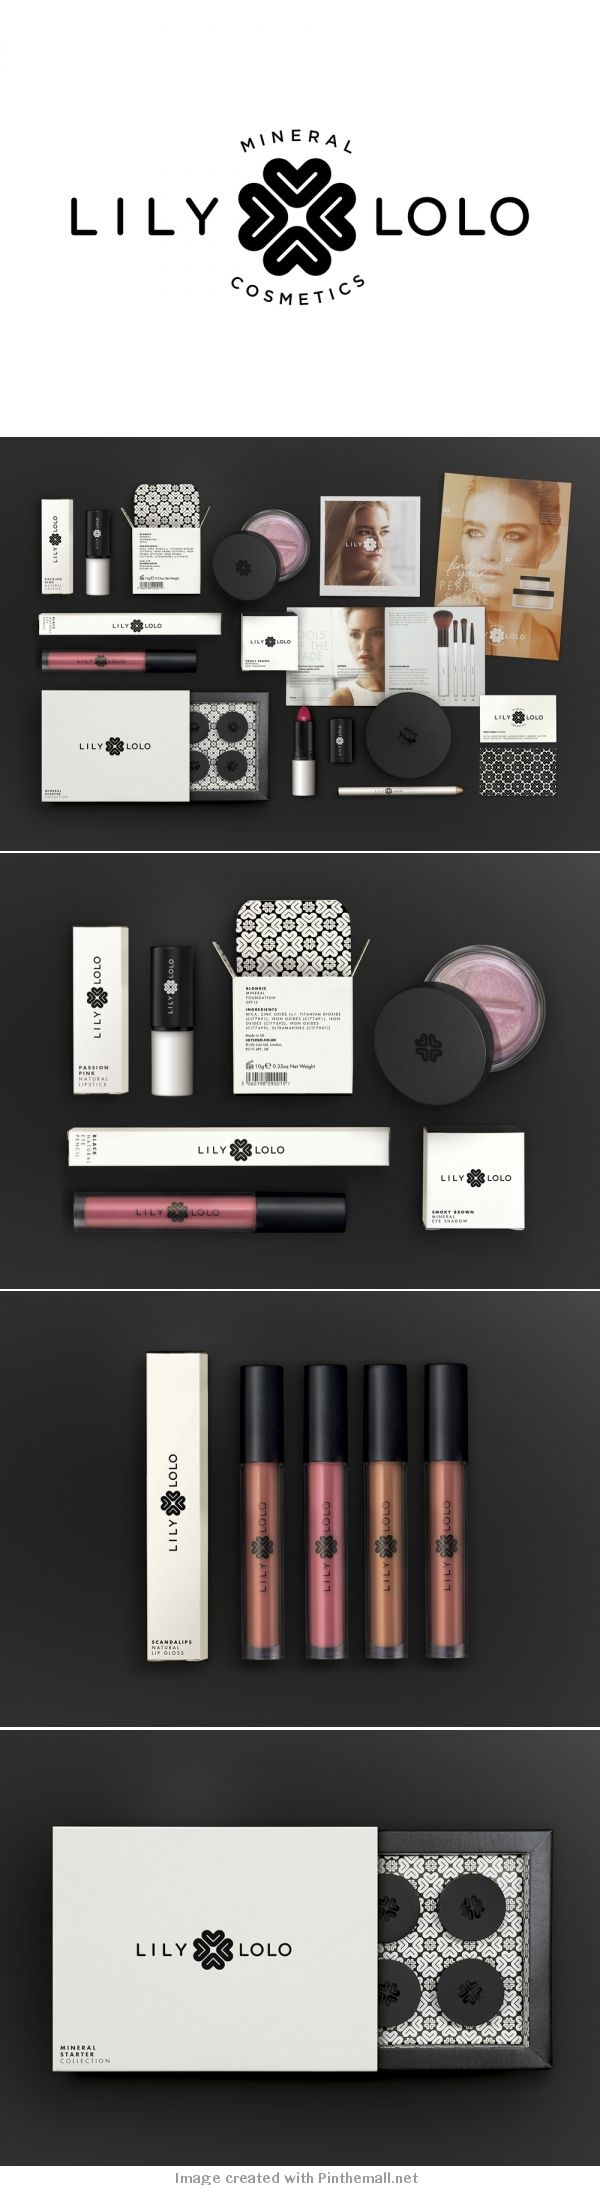 This black background works really well for the white product packaging, this could be an idea to photograph sketches on.